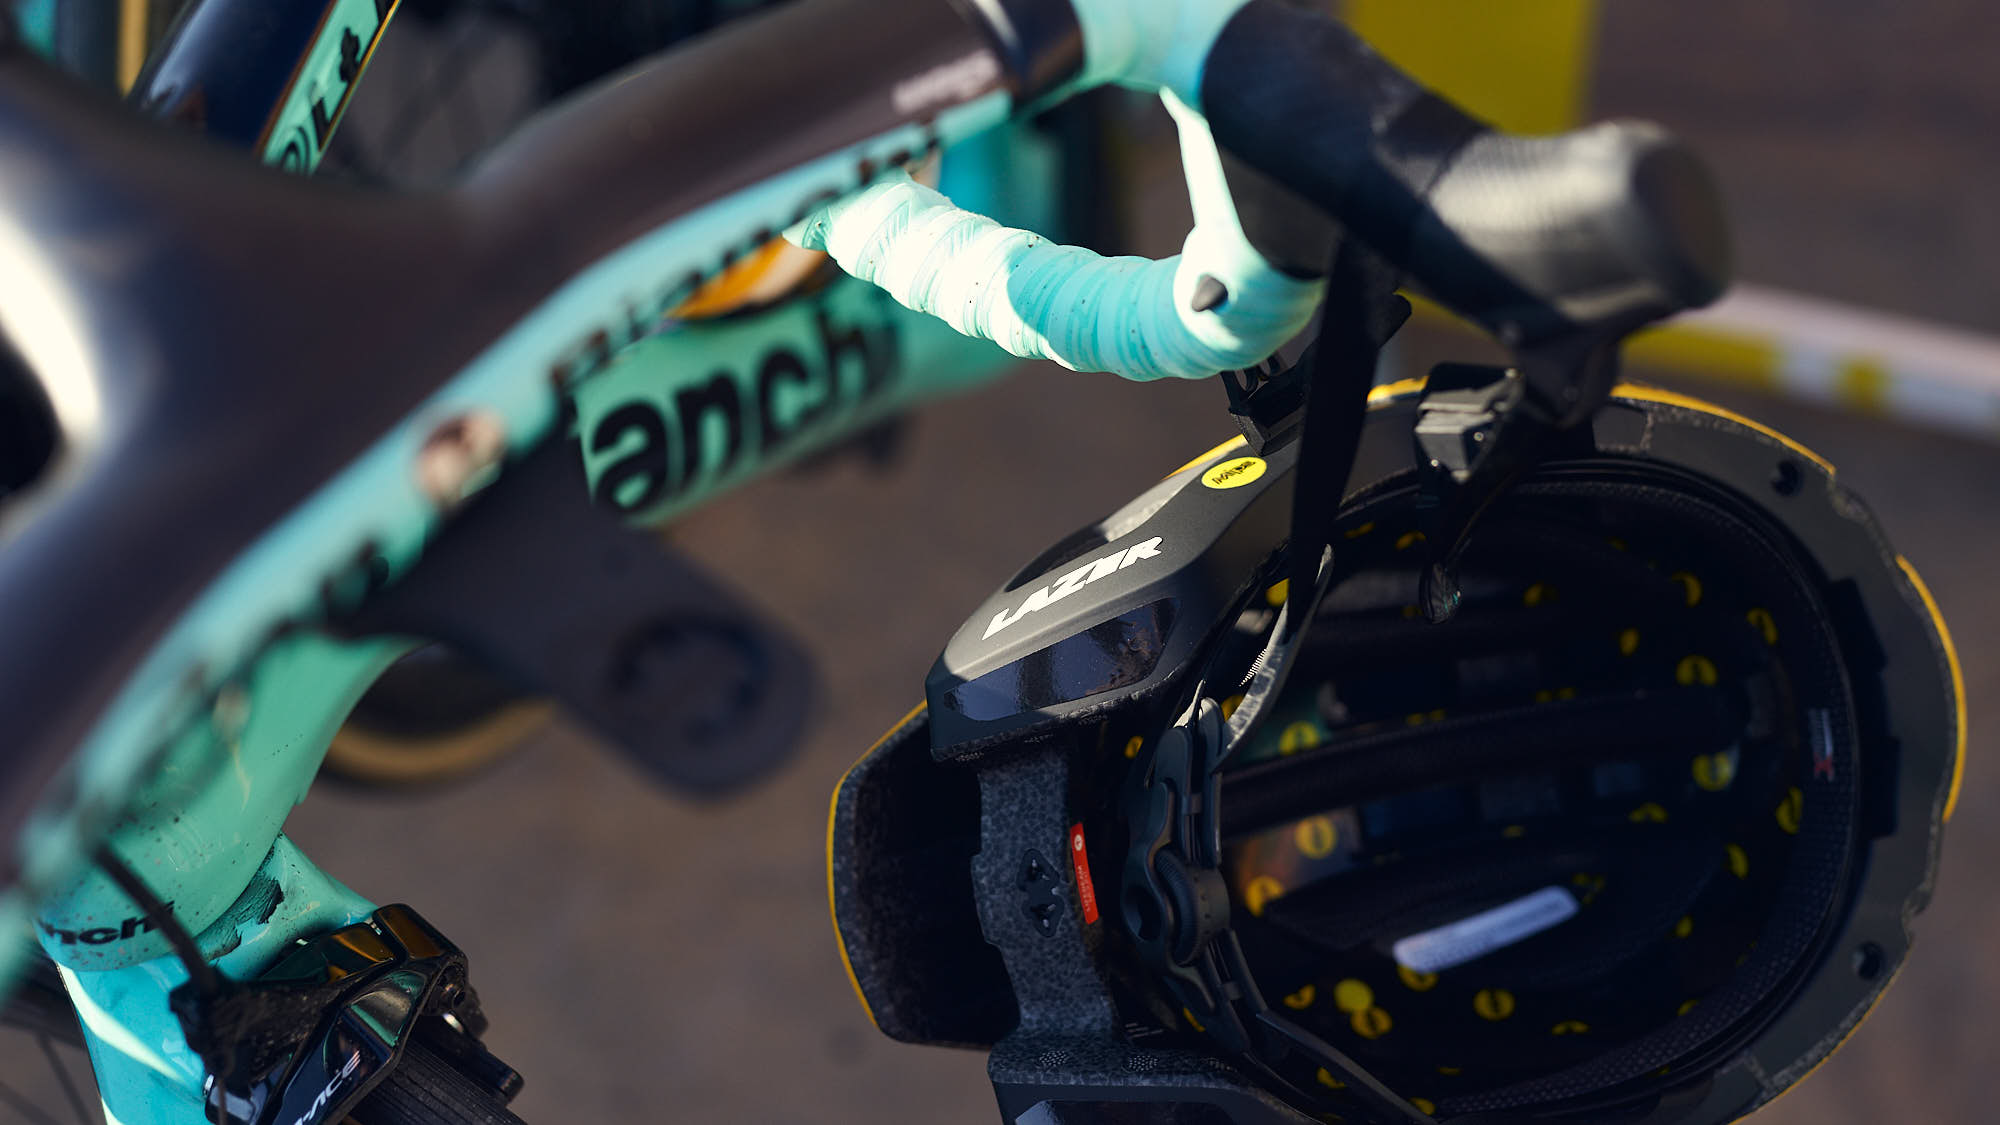 Lazer helmet hanging from a Bianchi bike's handlebars